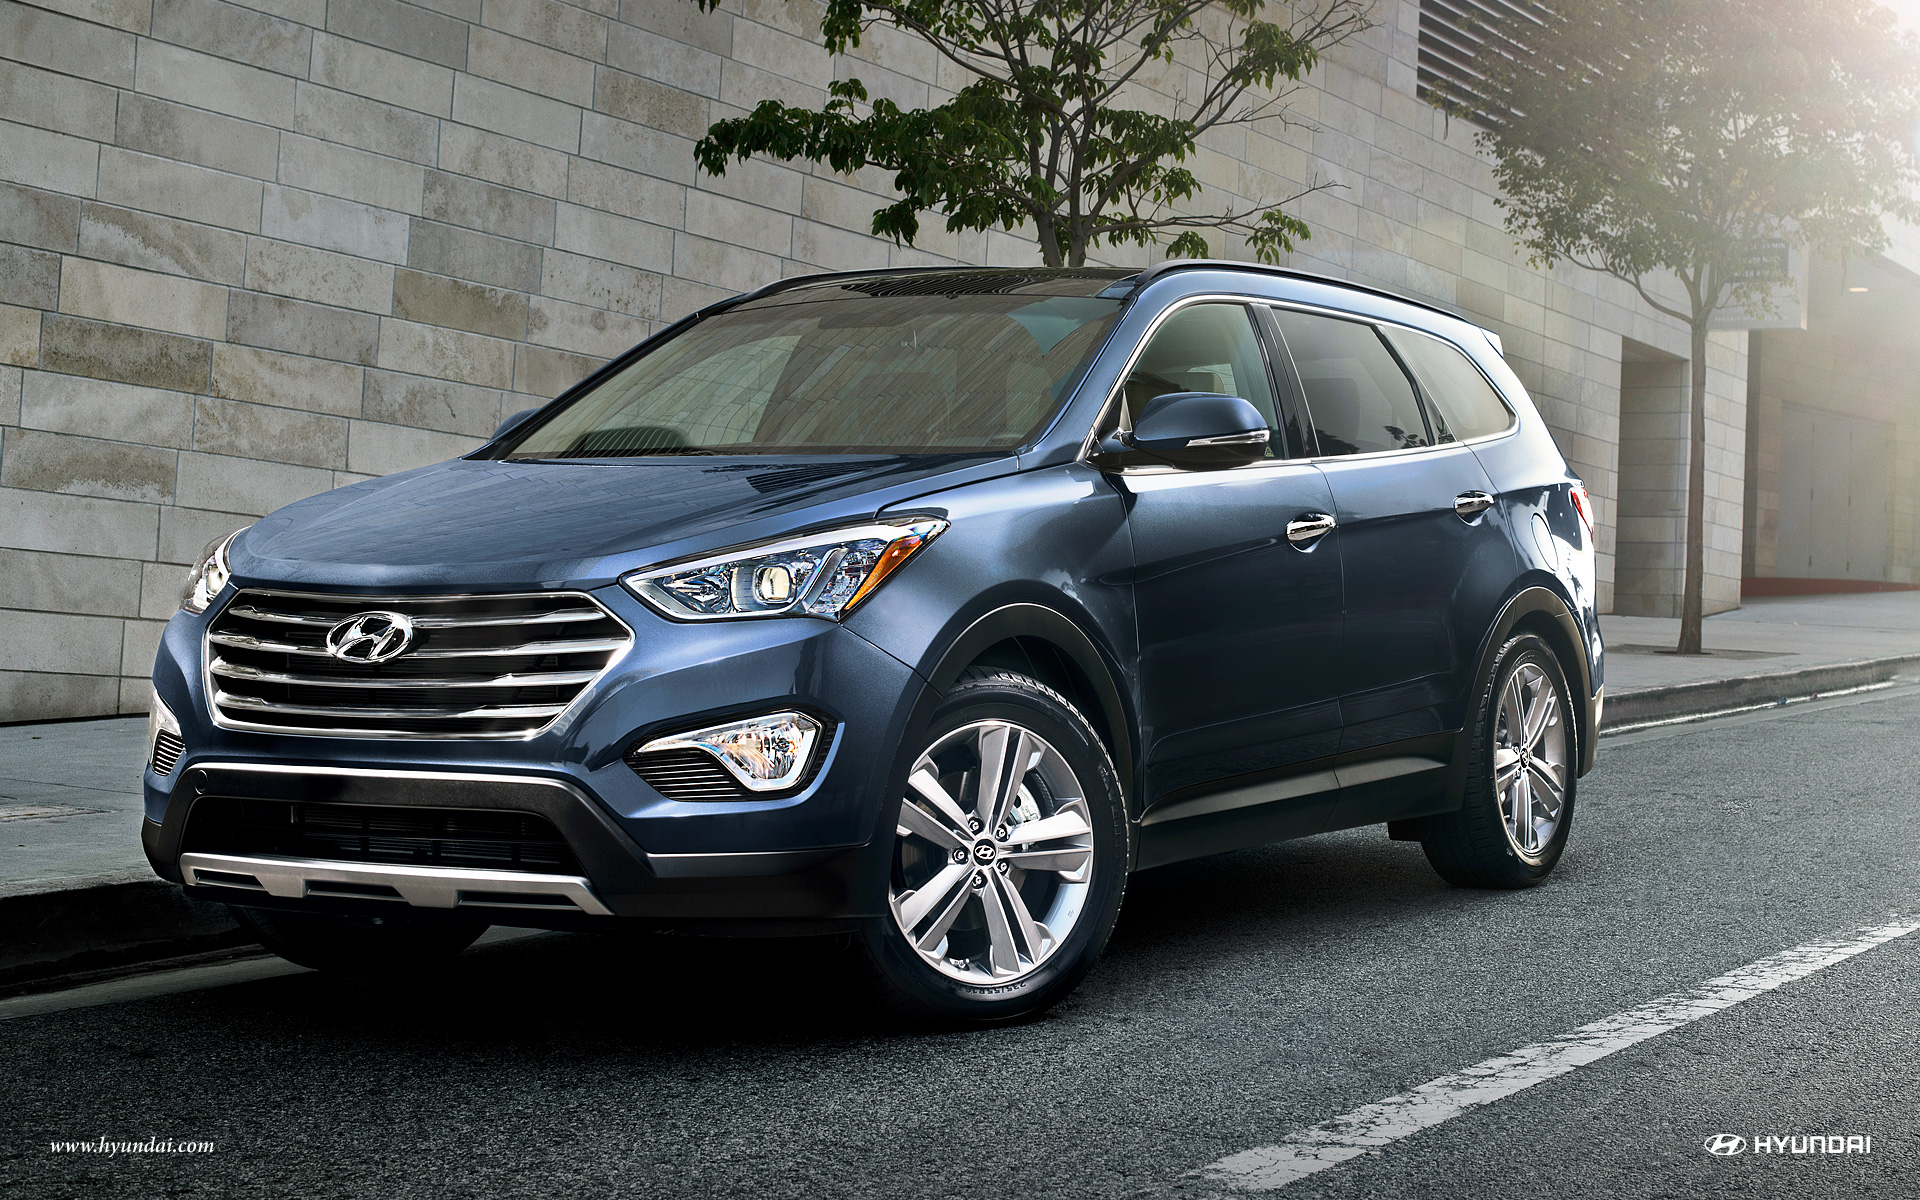 heritage hyundai towson 2016 hyundai santa fe. Black Bedroom Furniture Sets. Home Design Ideas